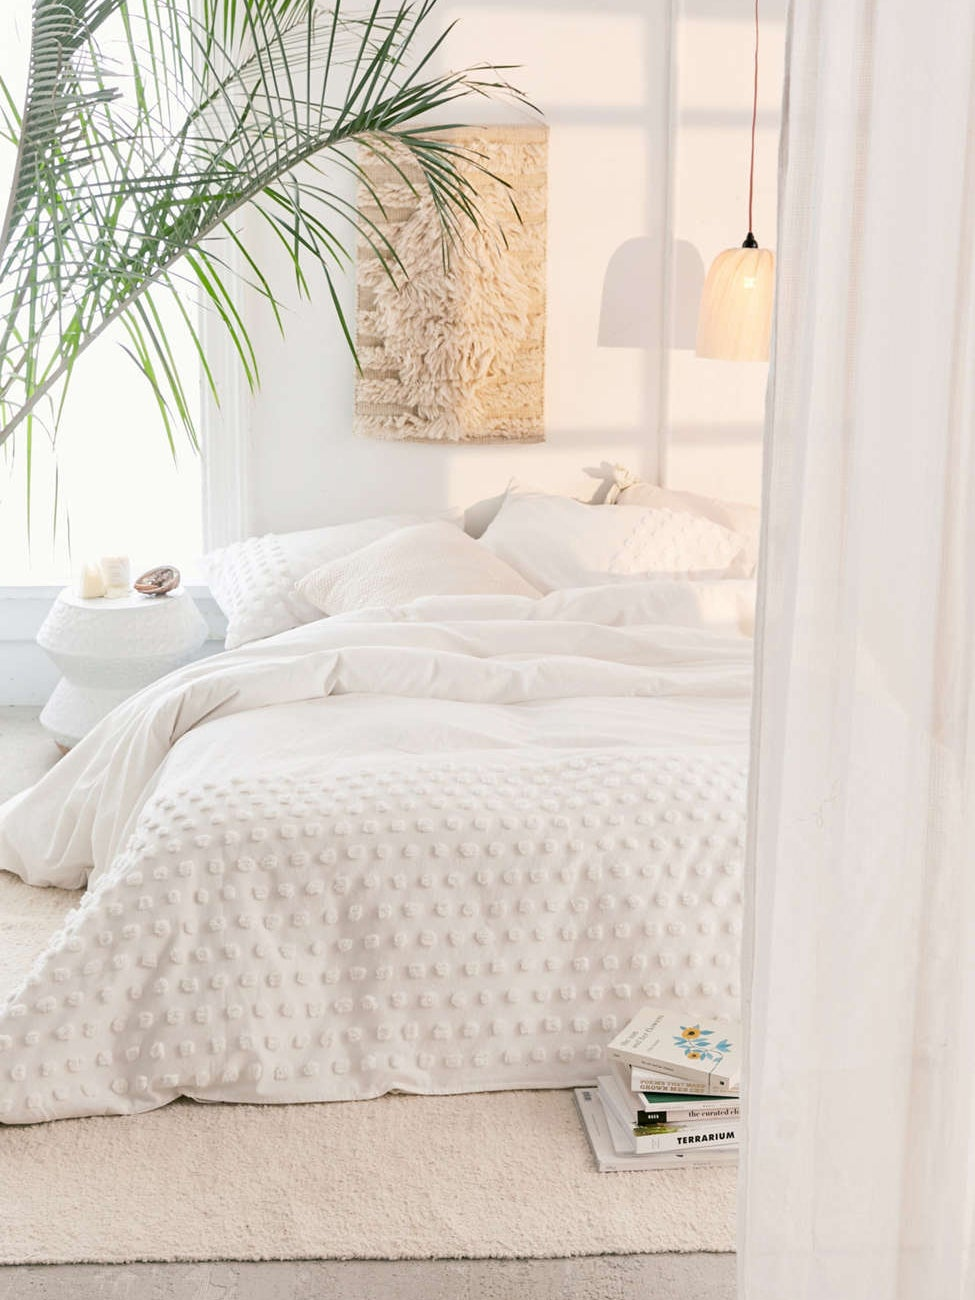 White bedspread on a mattress on the floor